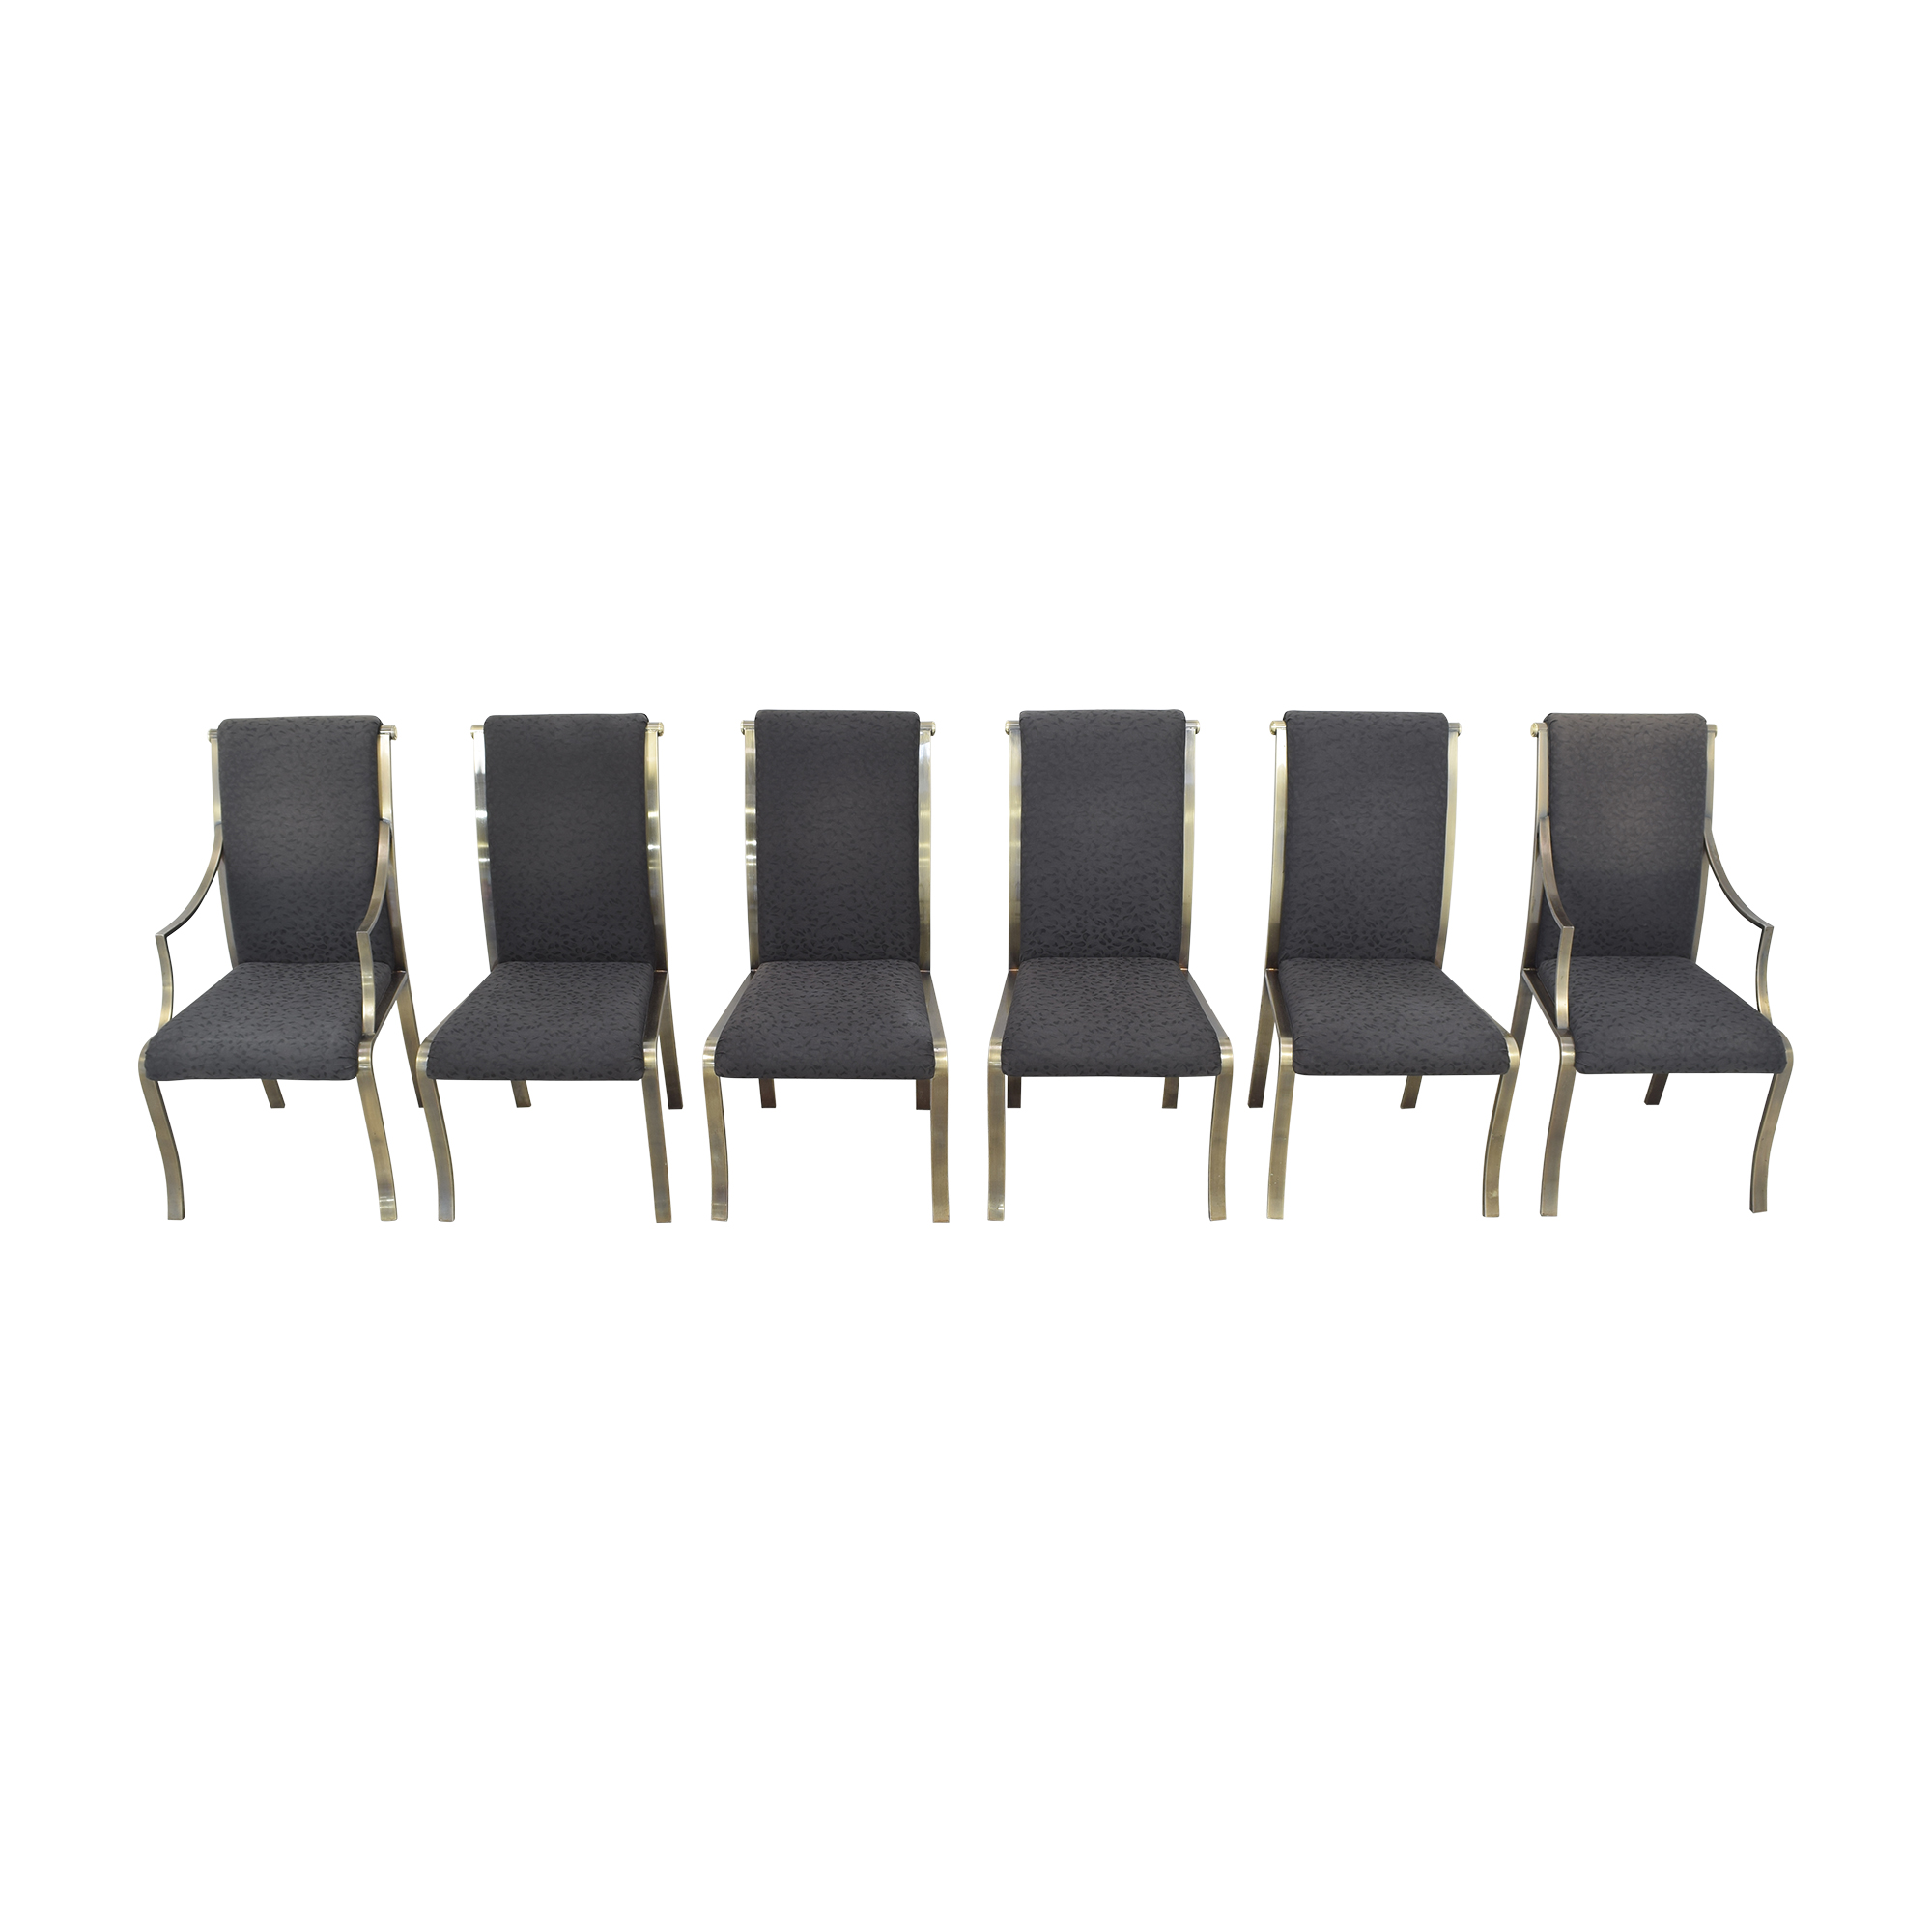 Design Institute America Design Institute America High Back Dining Chairs coupon